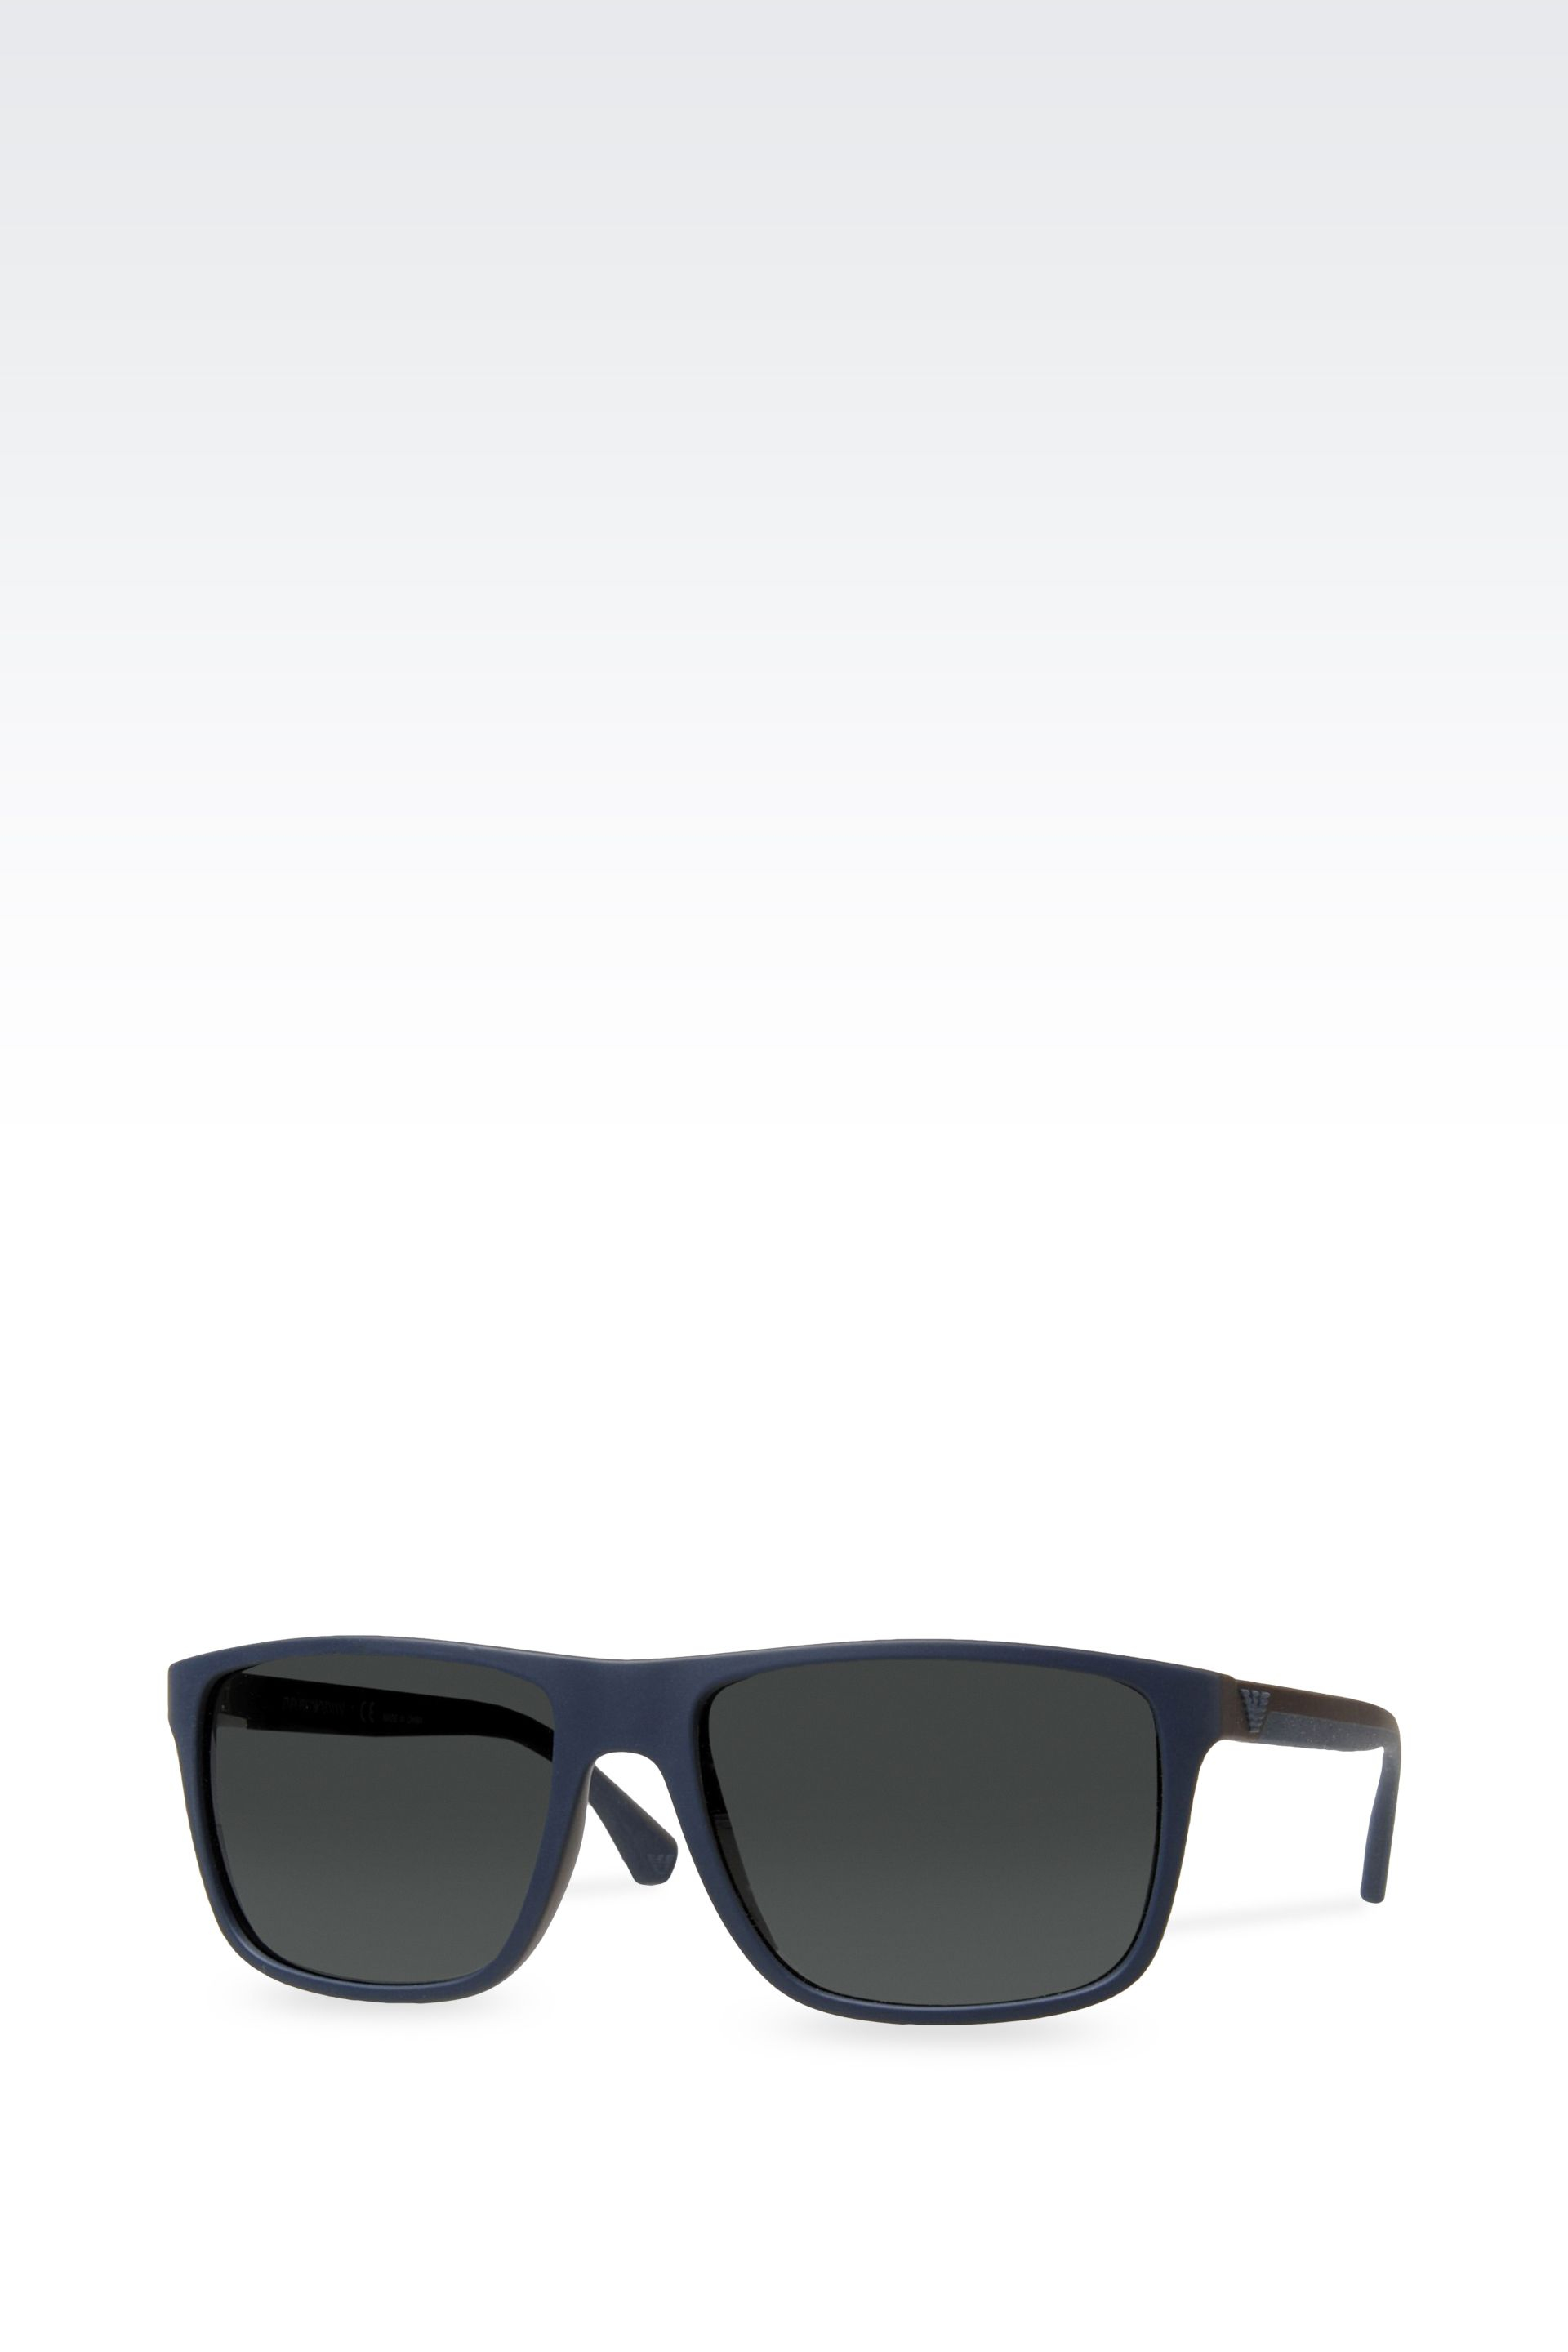 b0bee738b2b3 Lyst - Emporio Armani Acetate Sunglasses With Rubber Details in Blue ...